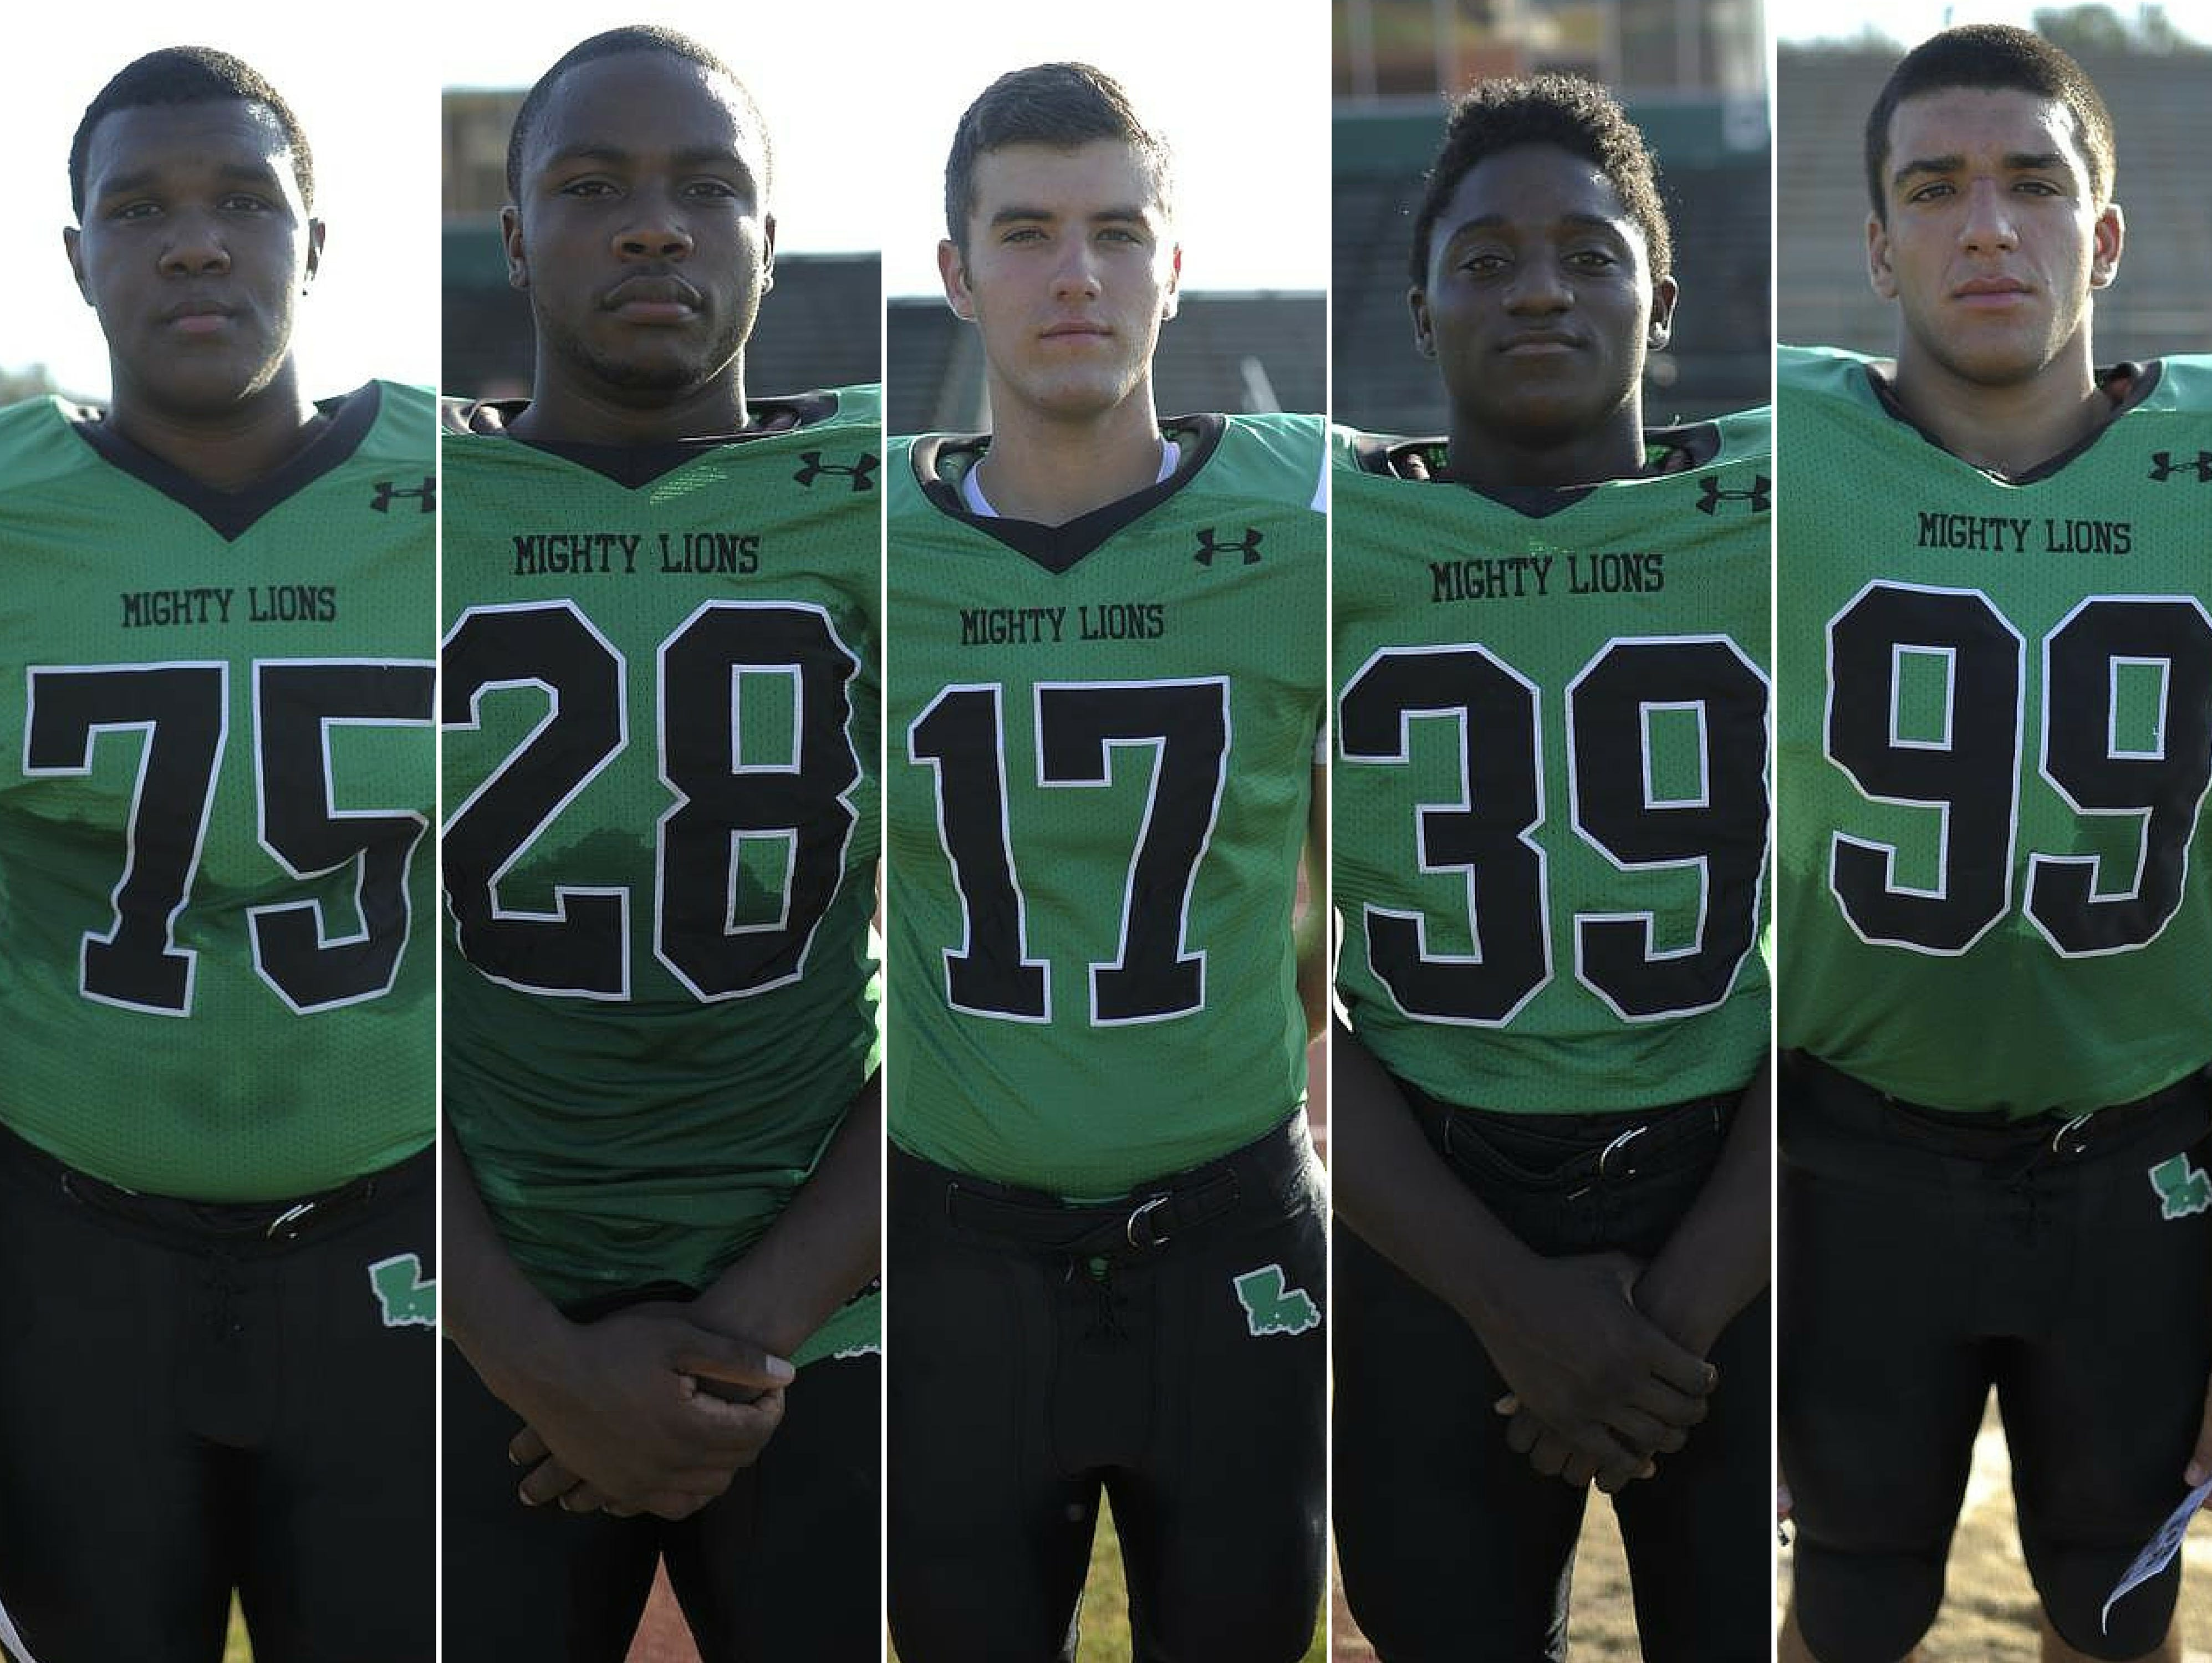 Lafayette High Players to Watch Dominique Williams, James Brown, Dwight Youngblood, Rodrigo Diaz, and Thaquan Priestley.